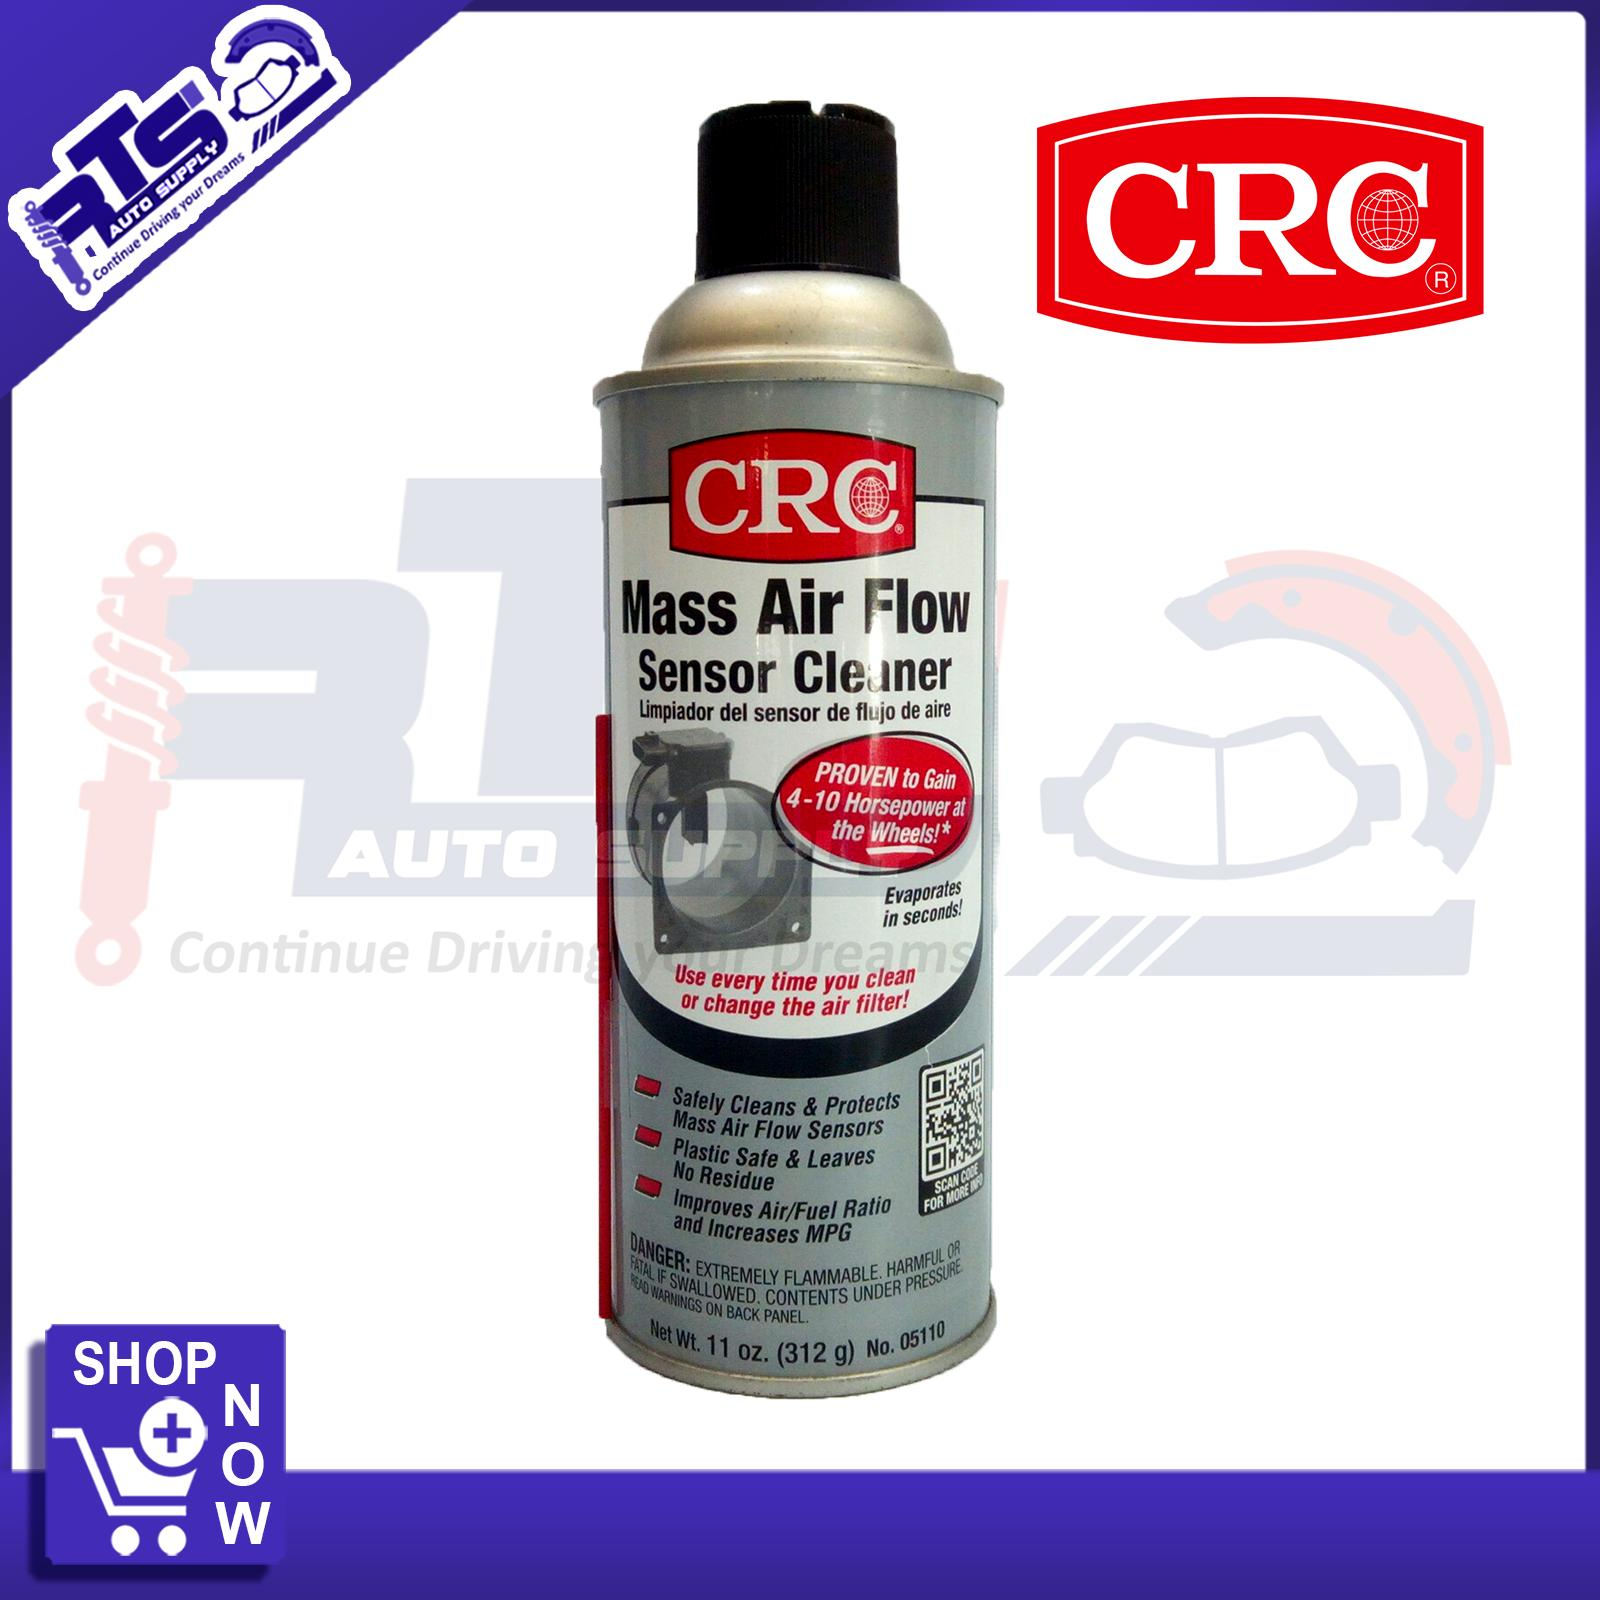 Crc Mass Air Flow Sensor Cleaner Maf Sensor Cleaner 312g By Rts Auto Supply